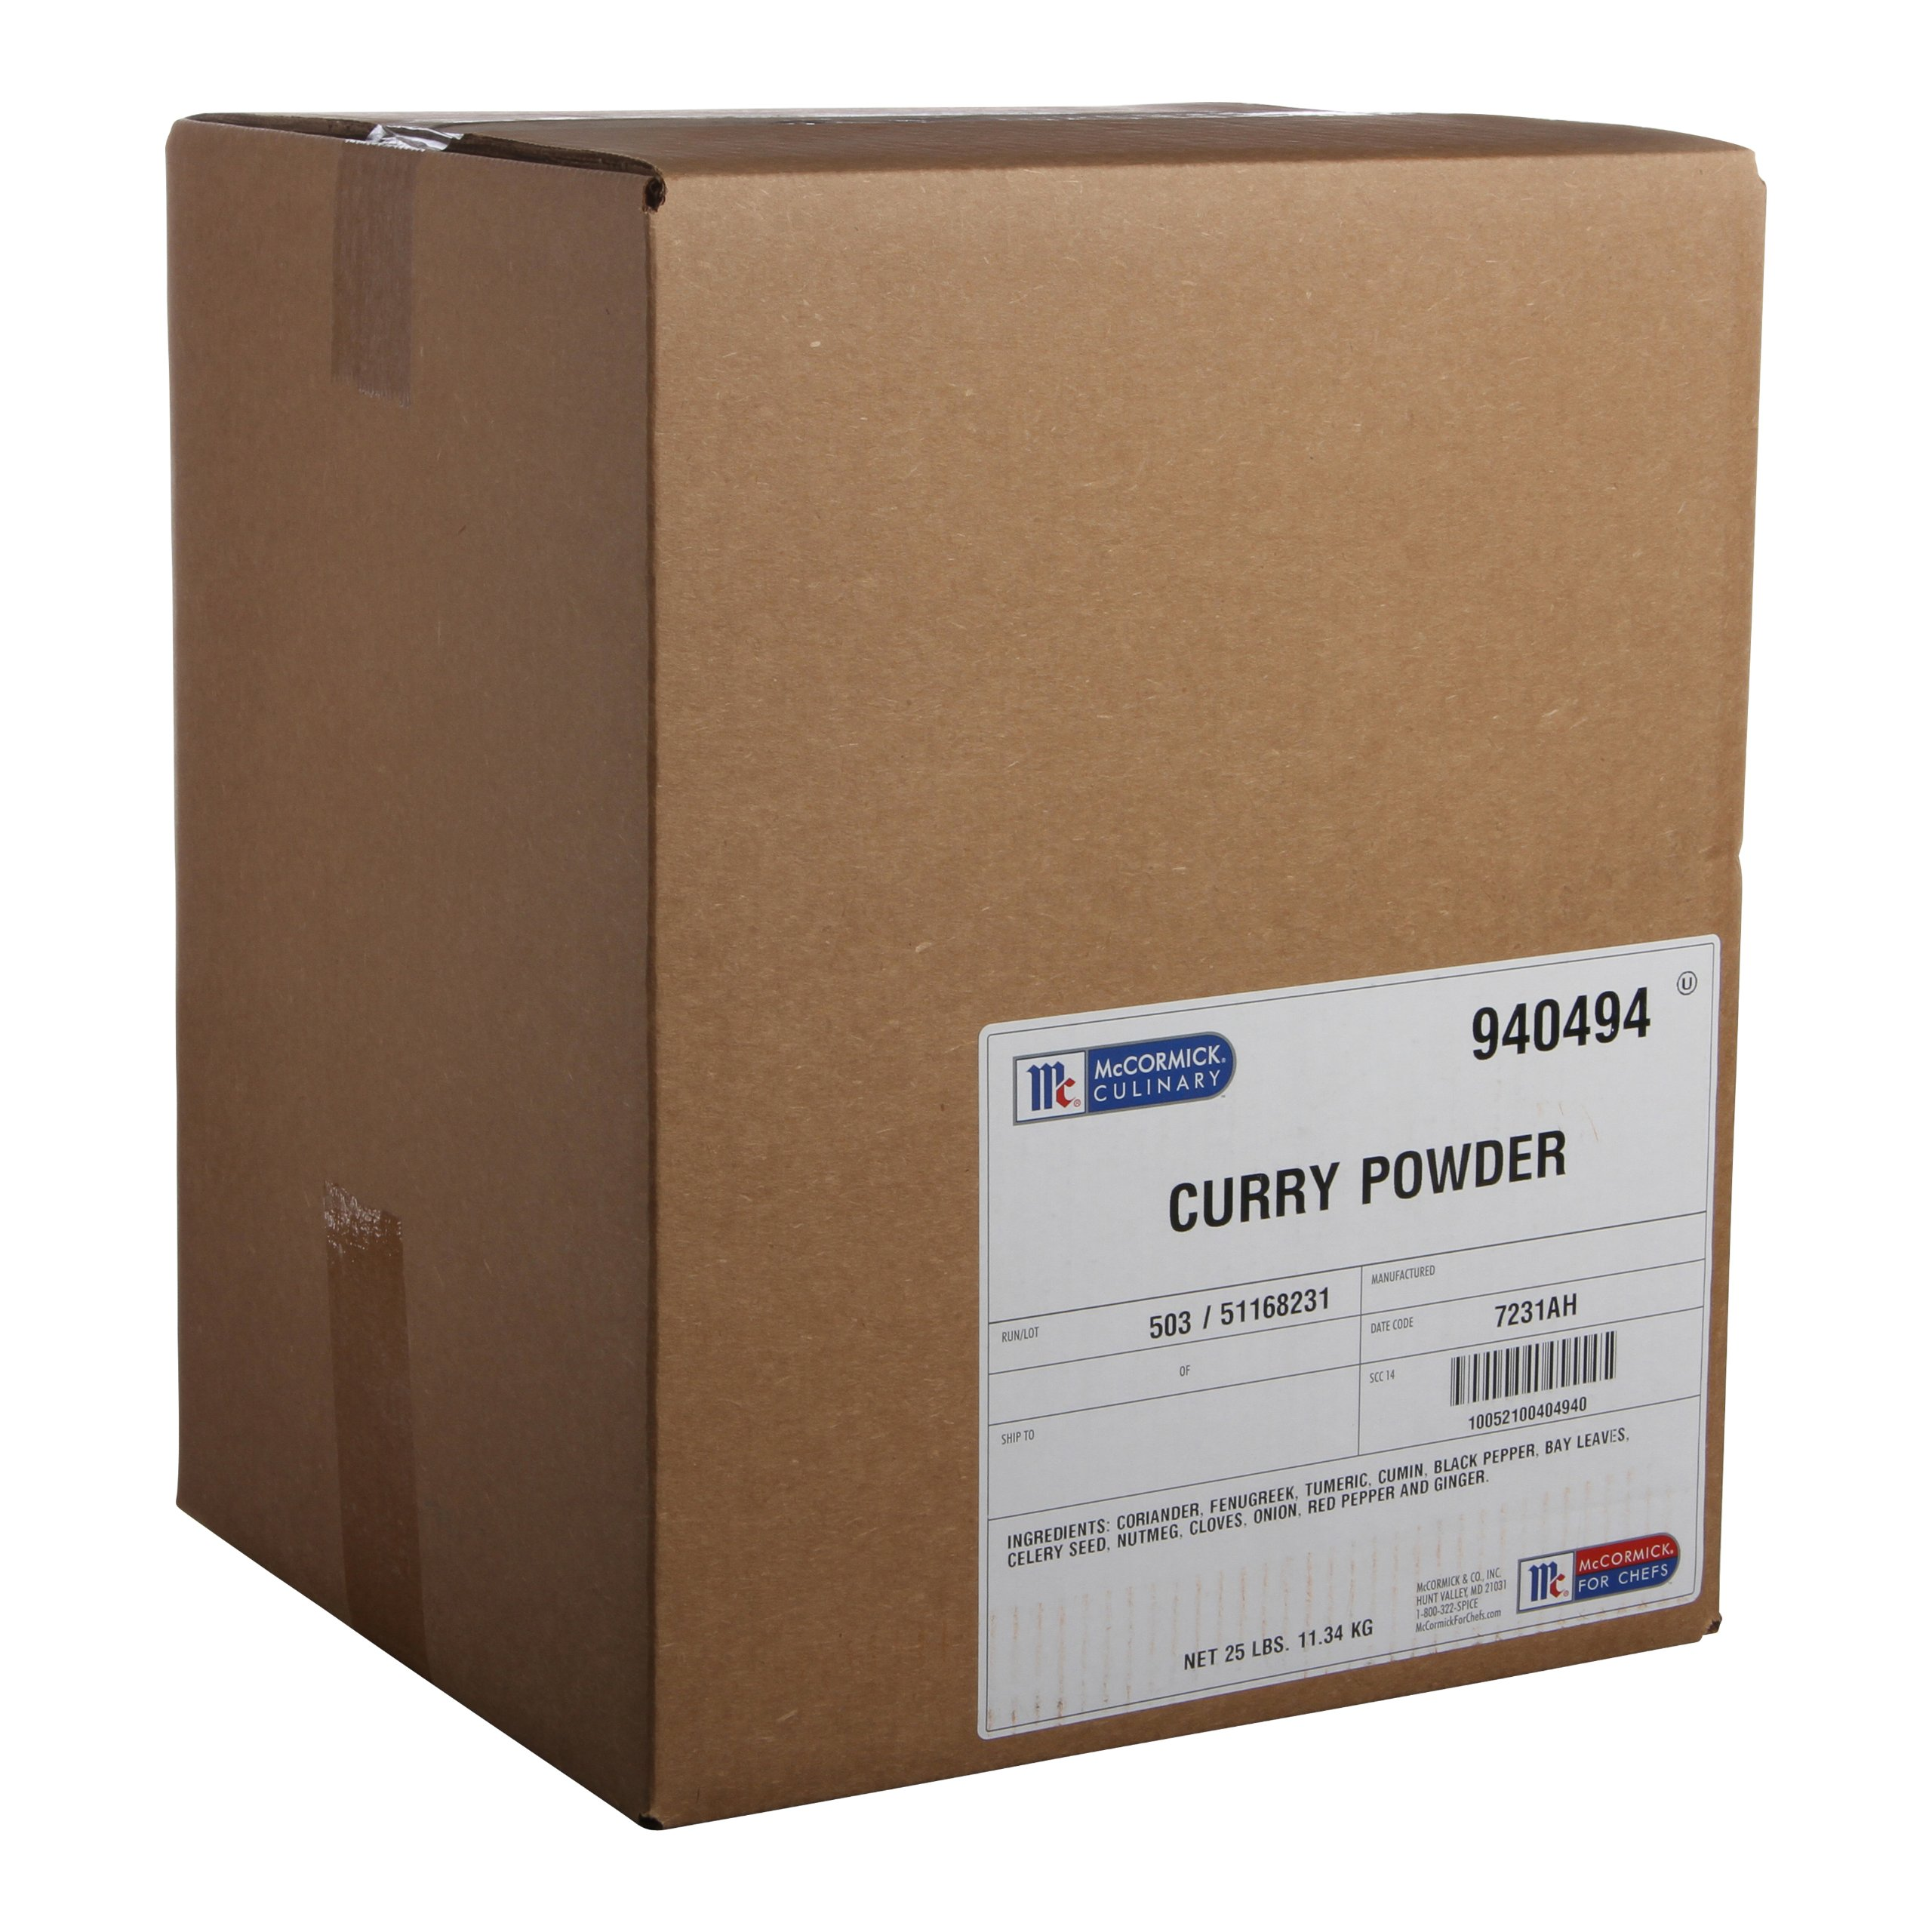 McCormick Culinary Curry Powder, 25 lbs by McCormick For Chefs (Image #1)